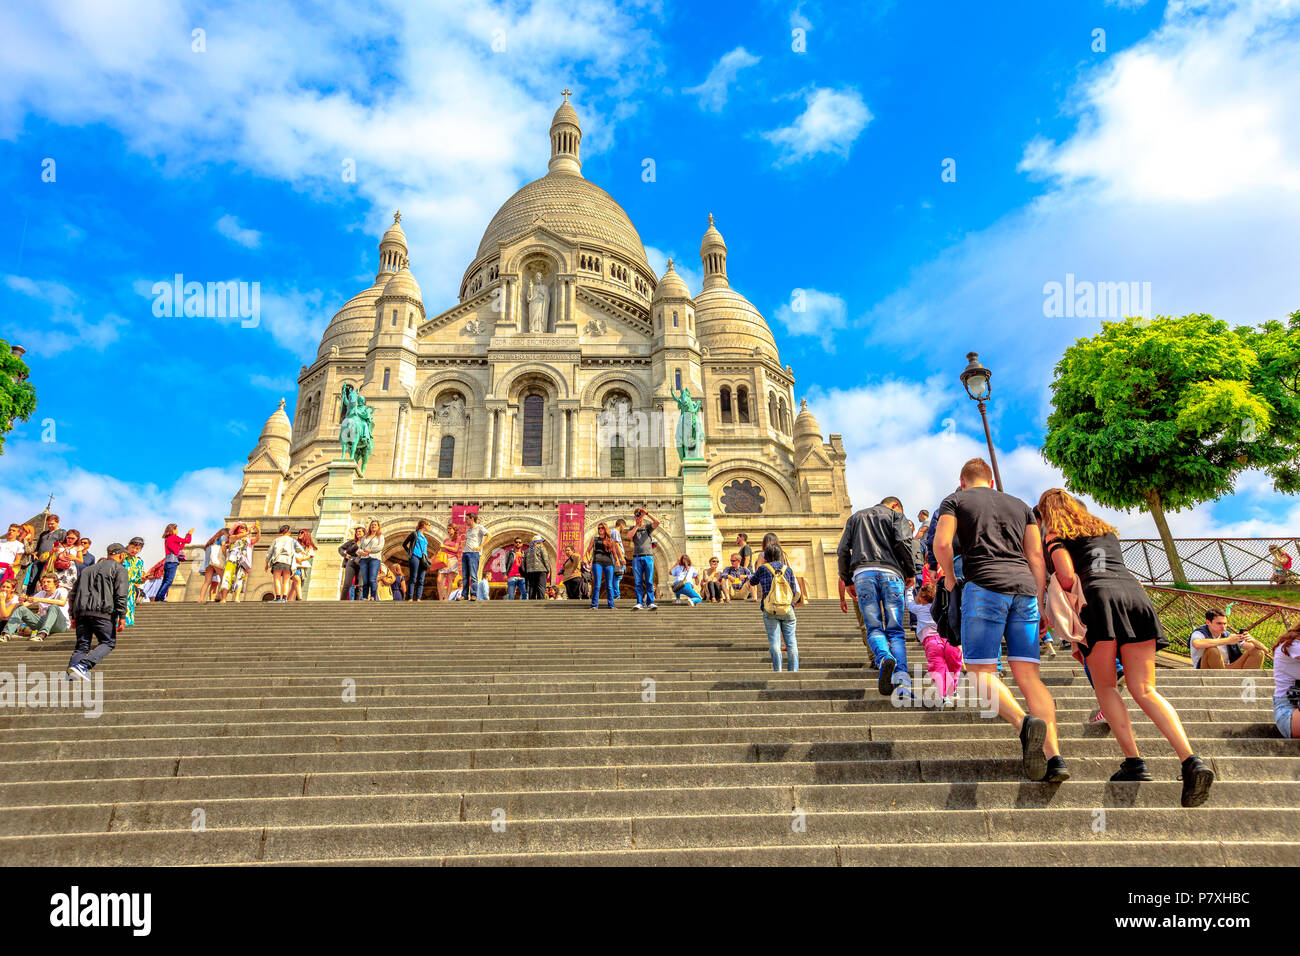 Paris, France - July 3, 2017: tourists climb up the steps leading to Basilica of Sacre Coeur de Montmartre in Paris in a sunny day with blue sky. Sacred Heart Church is a popular tourist landmark. - Stock Image